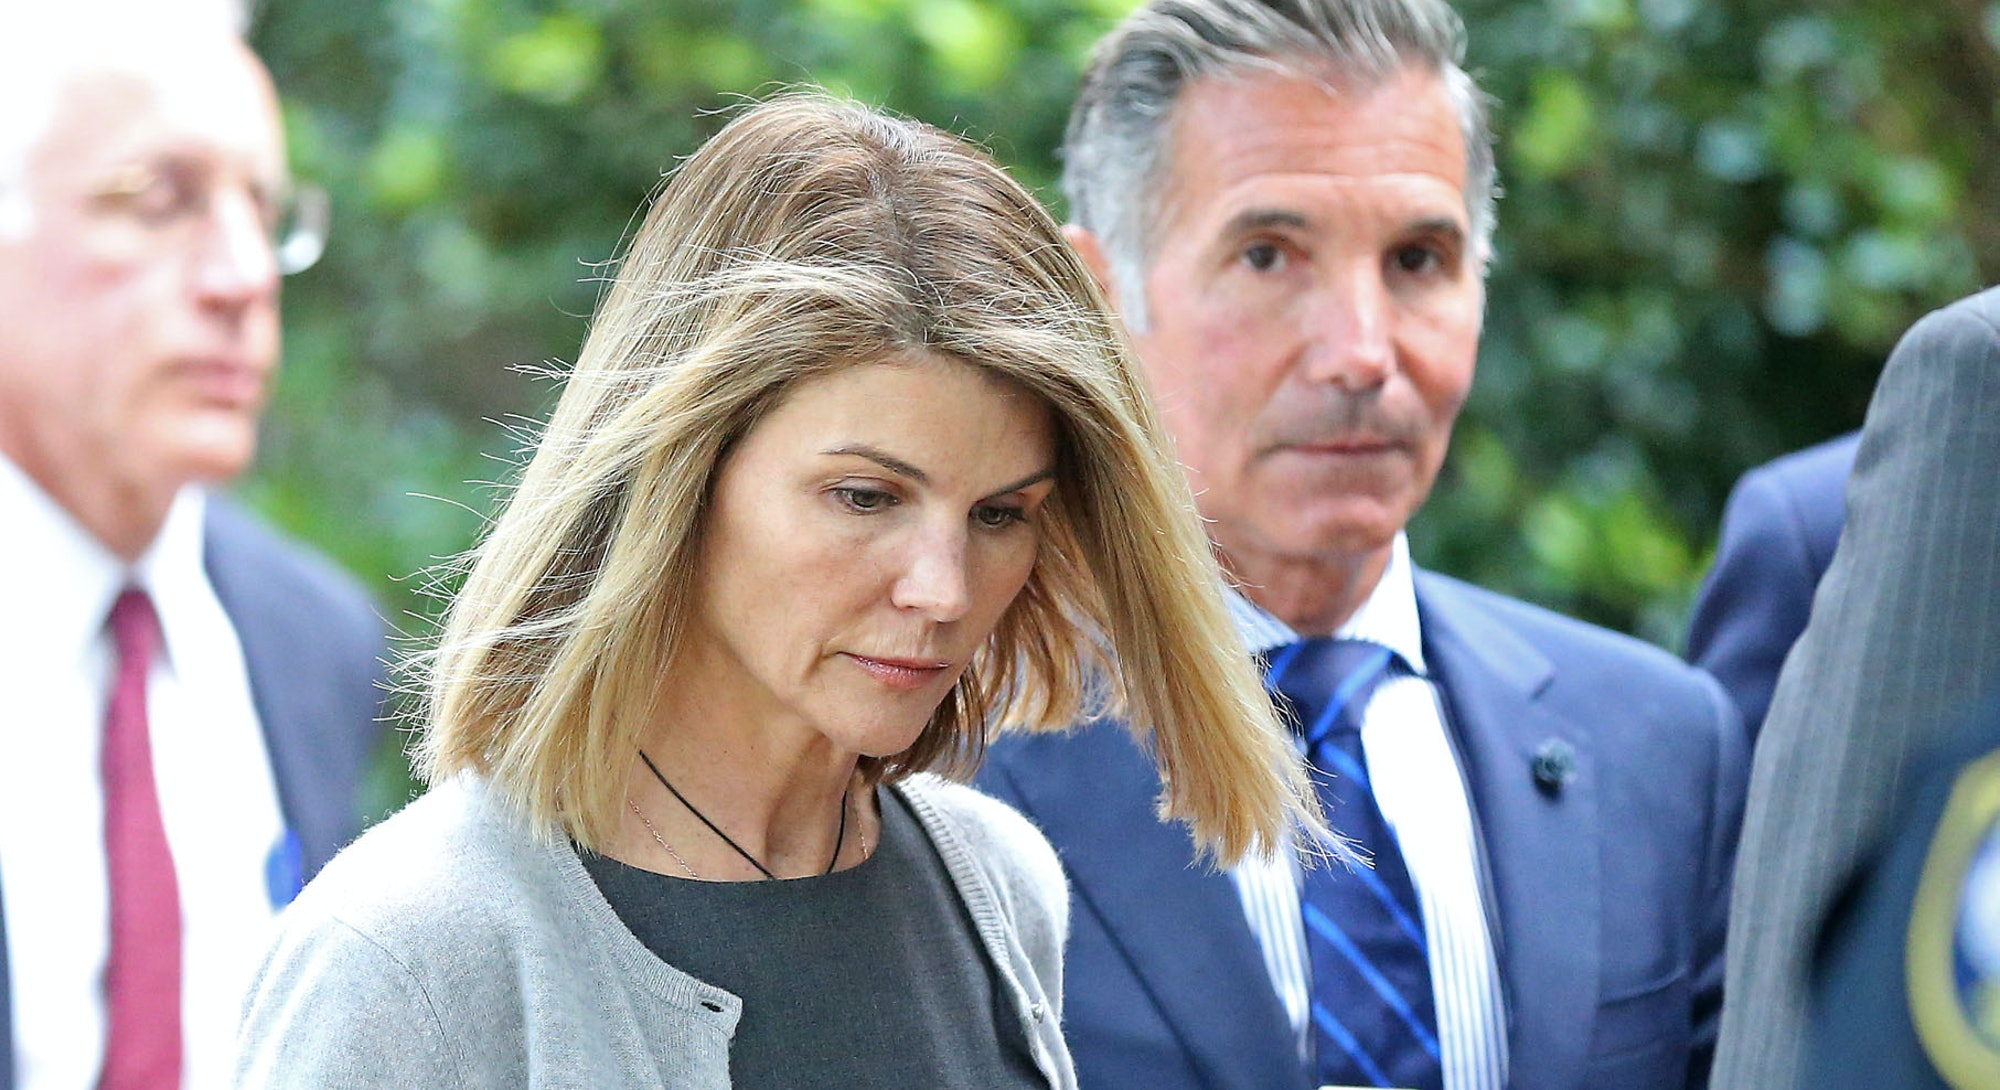 BOSTON MA. - AUGUST 27:  Actress Lori Loughlin and her husband Mossimo Giannulli leave Moakley Federal Courthouse after a brief hearing  on August 27, 2019 in Boston, MA.   (Staff Photo By Stuart Cahill/MediaNews Group/Boston Herald)  ( Photo by Stuart Cahill/MediaNews Group/Boston Herald via Getty Images)